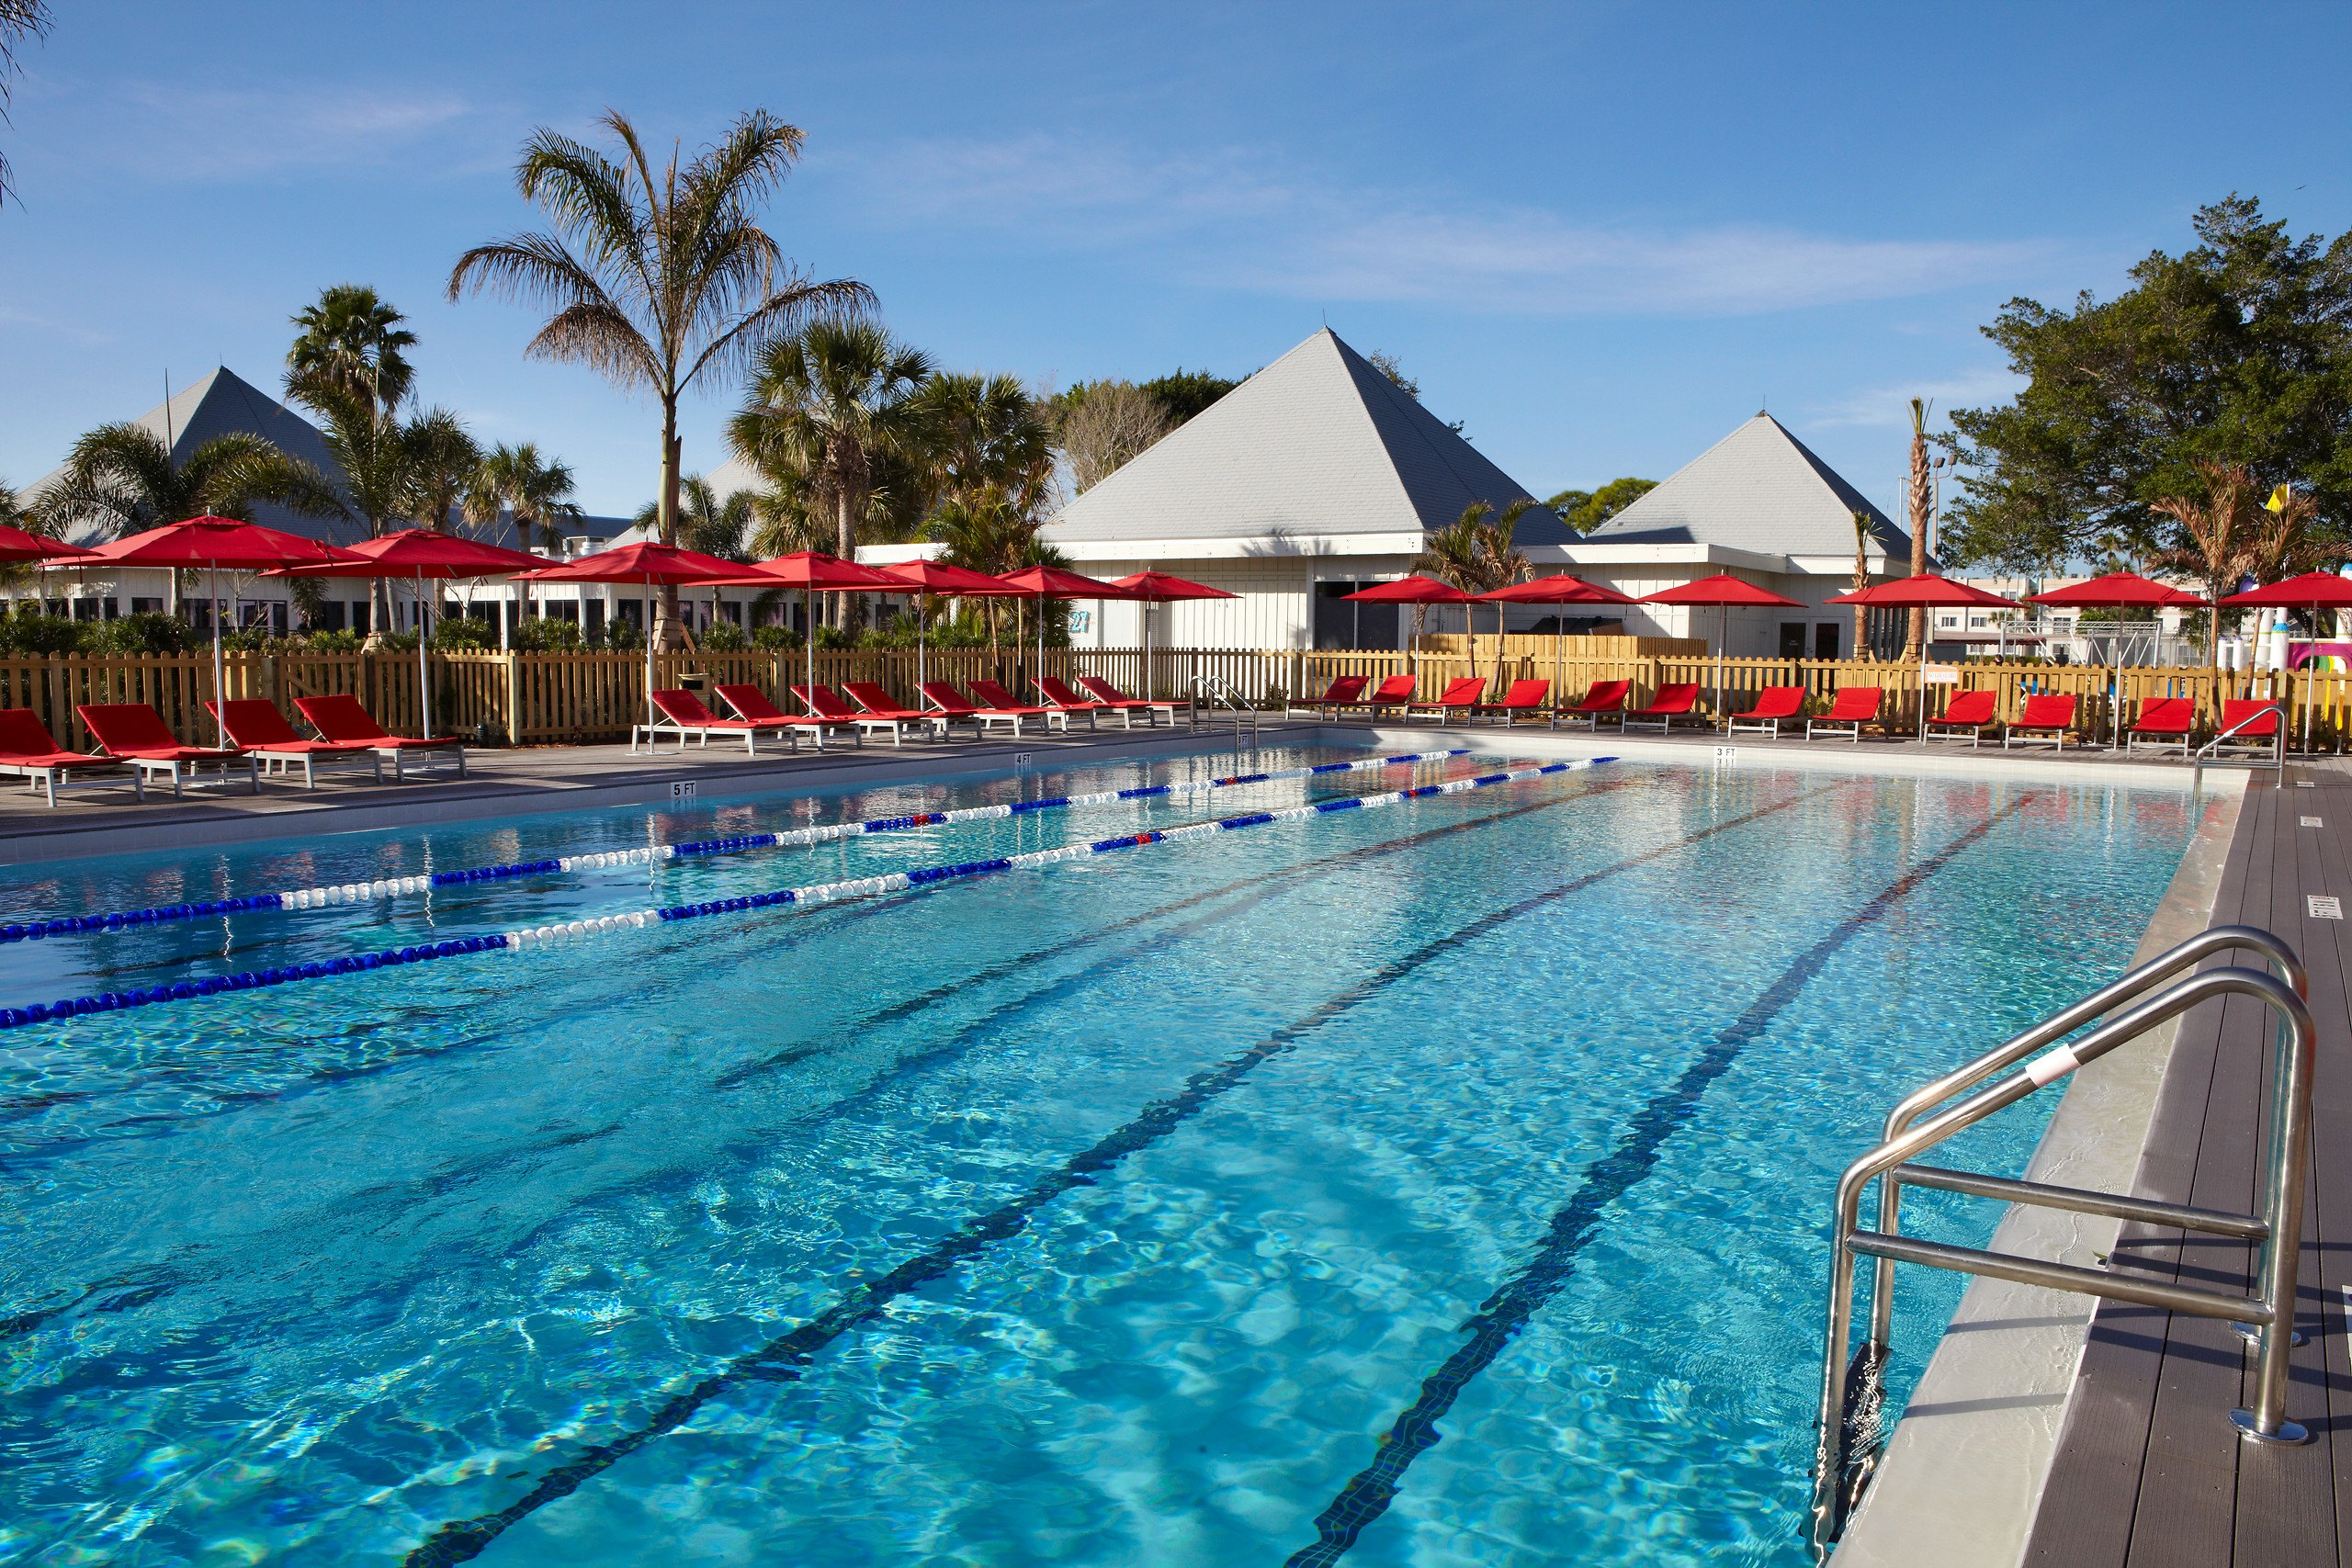 All Inclusive Resort In Florida | All Inclusive Florida Vacations - Club Med Florida Map